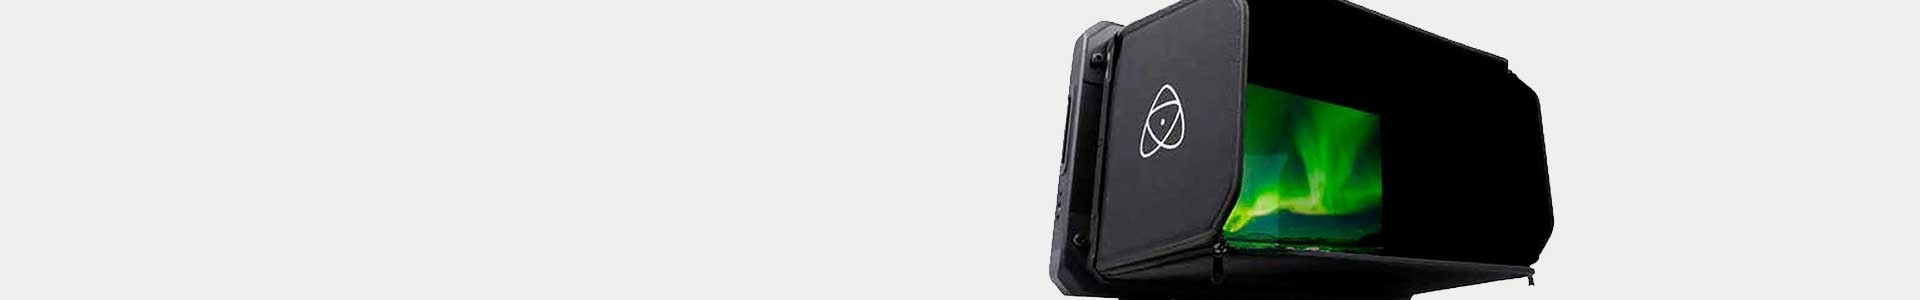 Accessories for Atomos products at Avacab Audiovisuales